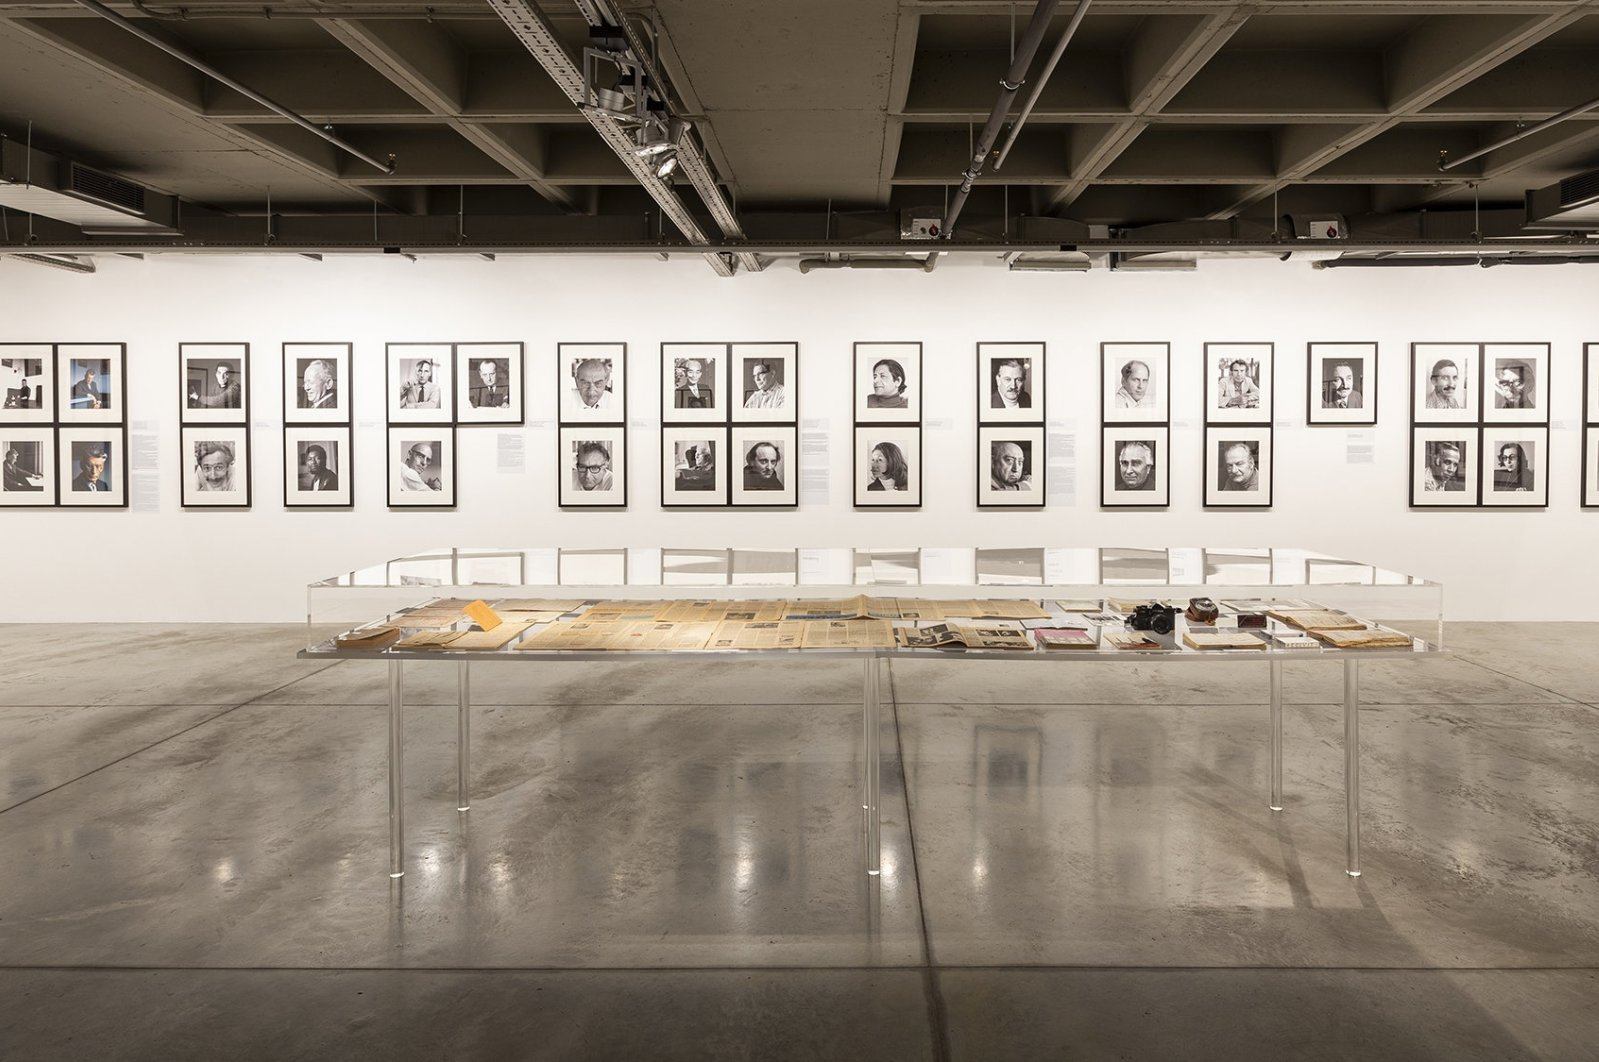 A collection of portrait photographs by Lütfi Özkök is on show at Istanbul Modern. (Courtesy of Istanbul Modern)